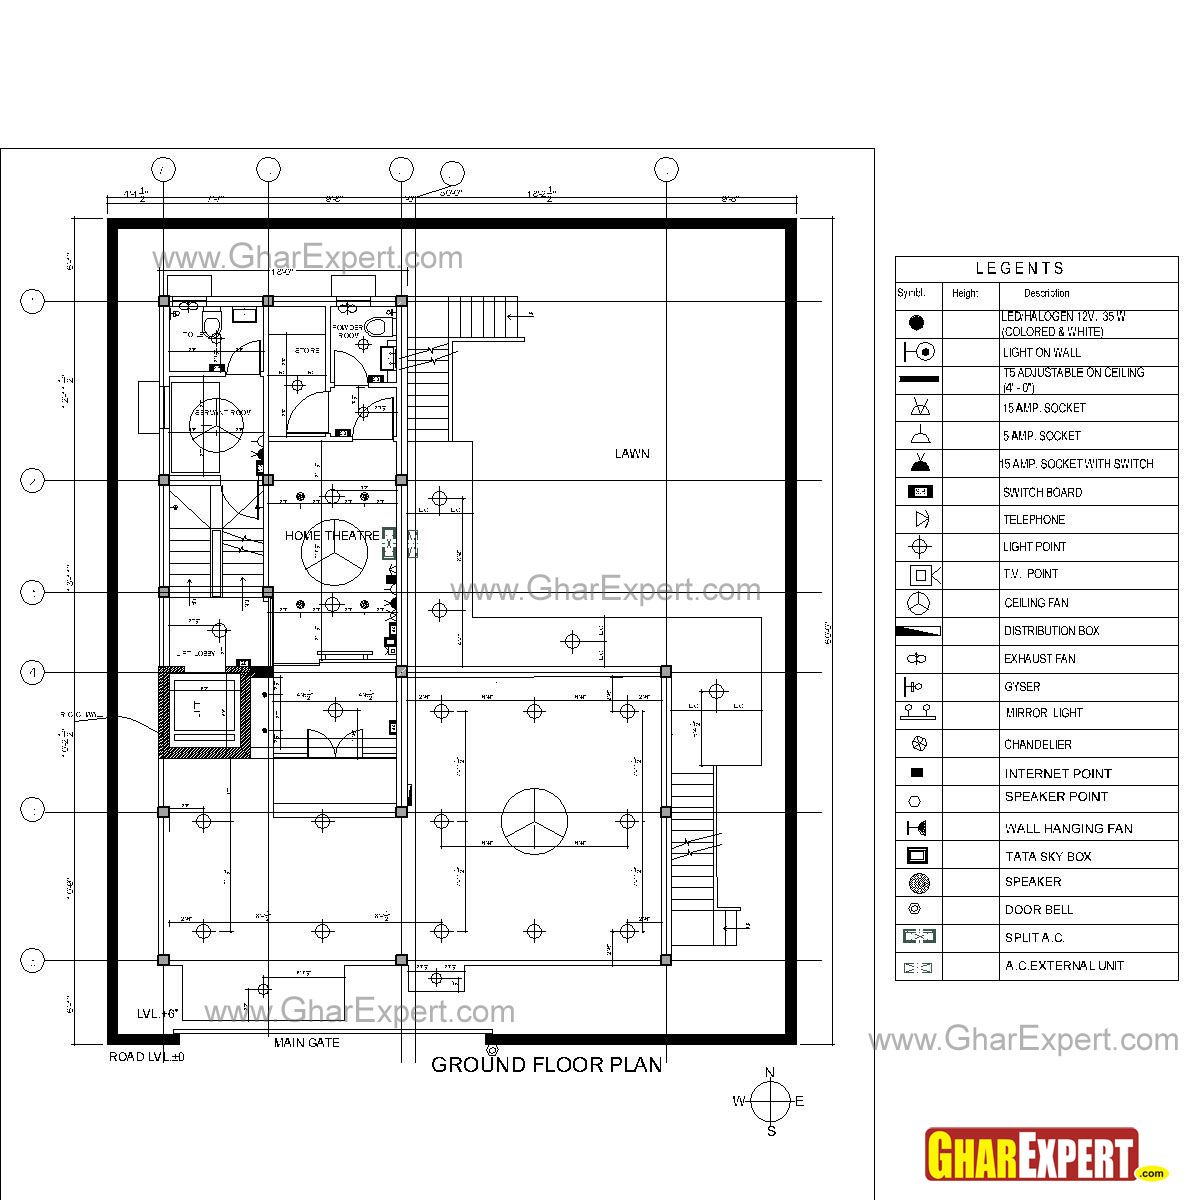 hight resolution of sample architectural structure plumbing and electrical drawings